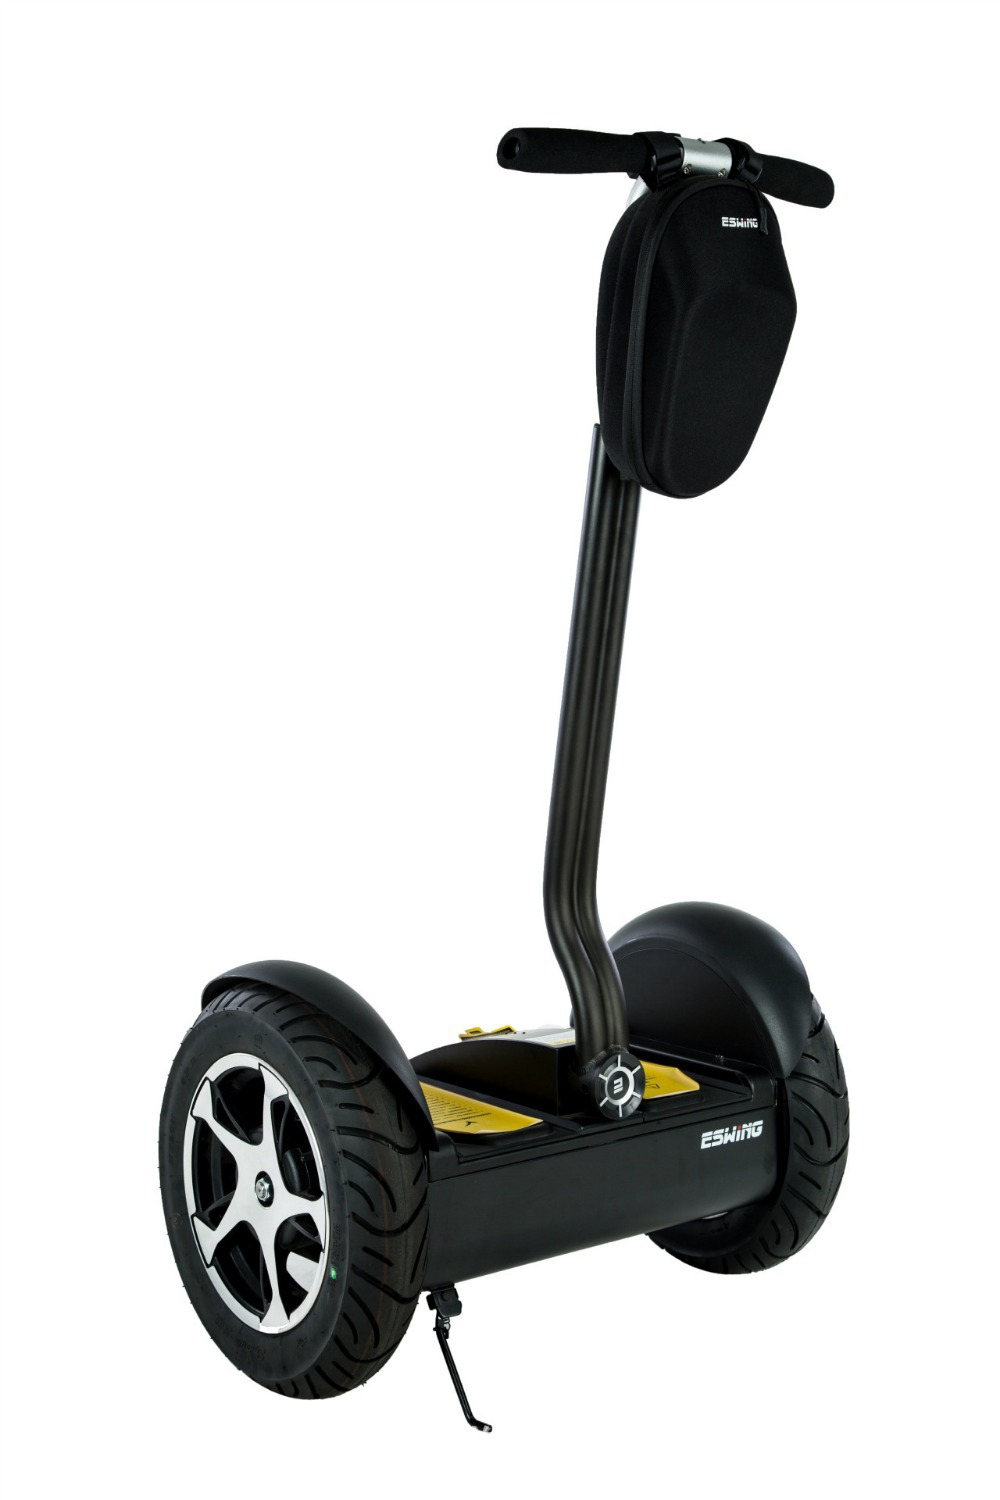 Two Wheel Balancing Motorcycle Electric Scooter Self